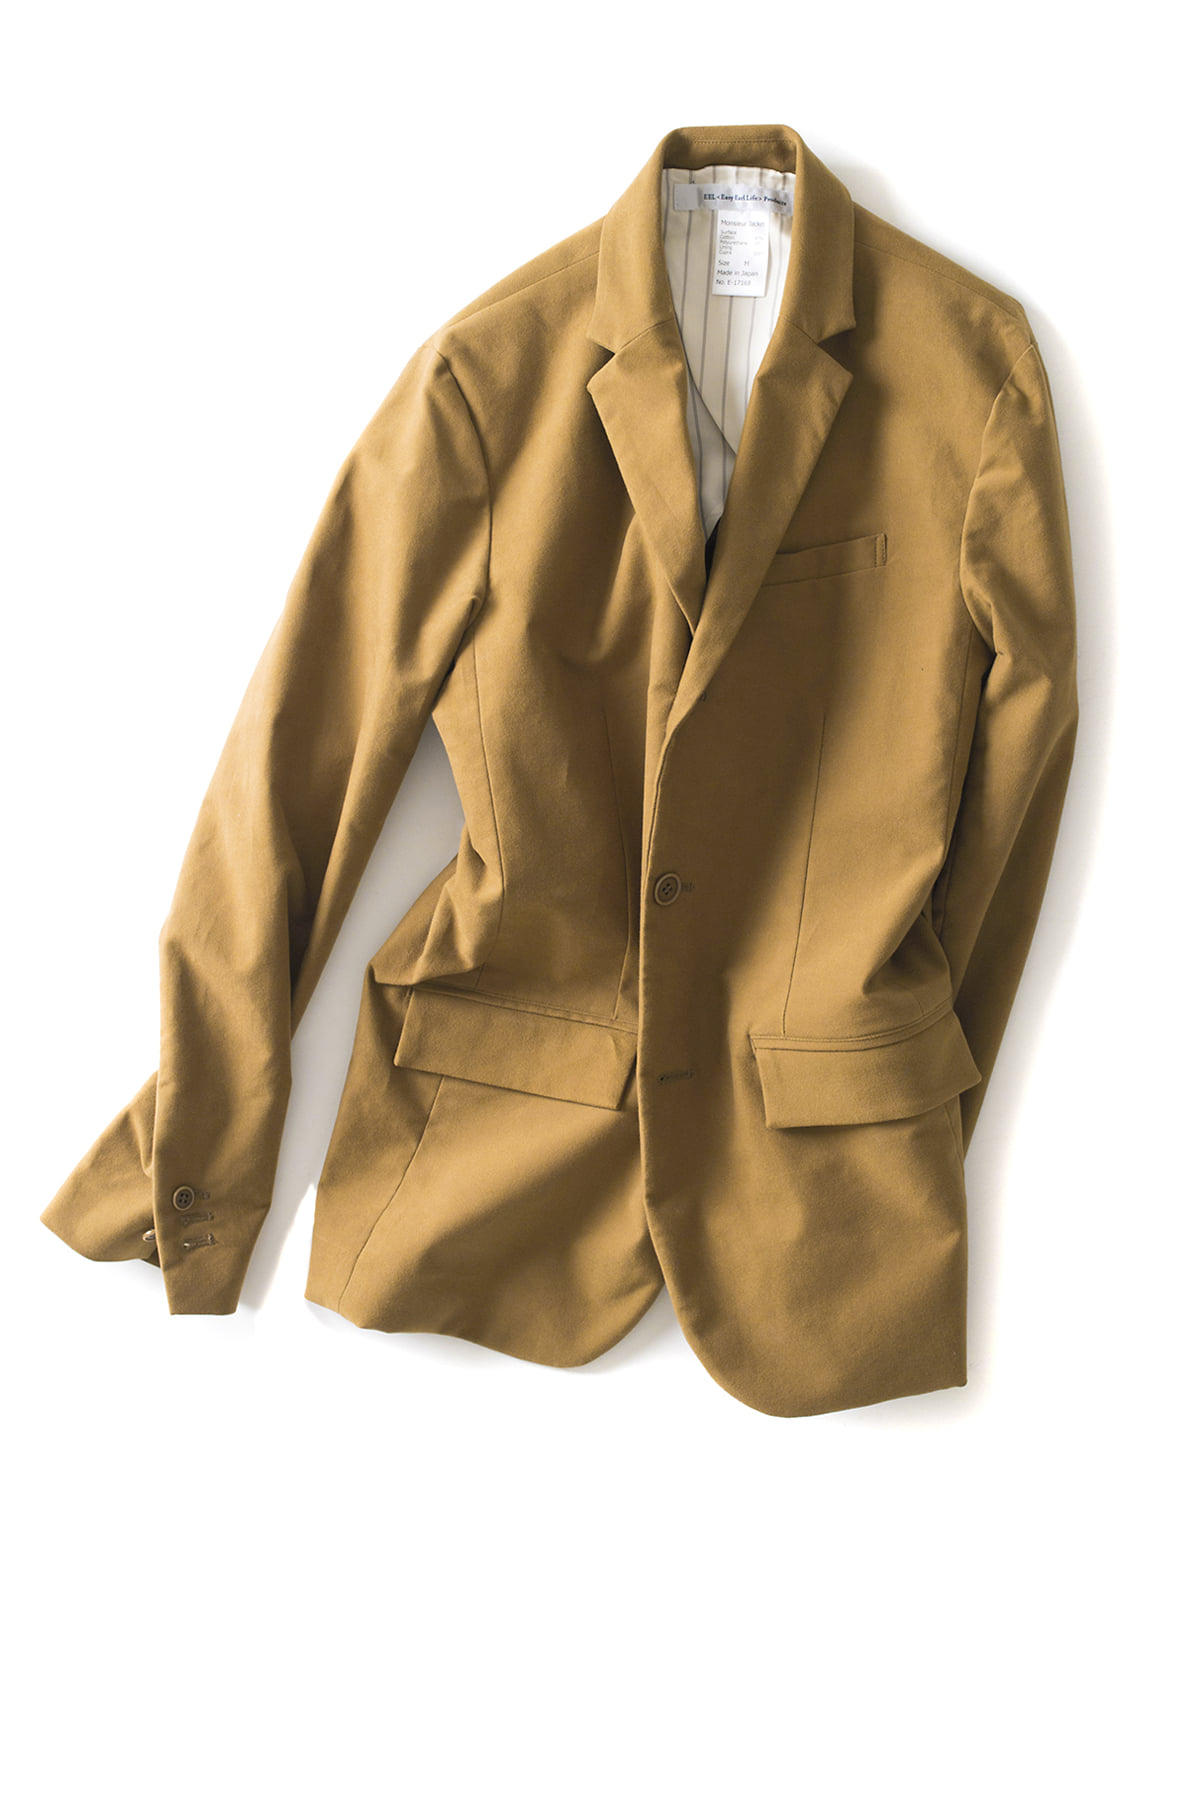 EEL : Monsieur Jacket (Camel)